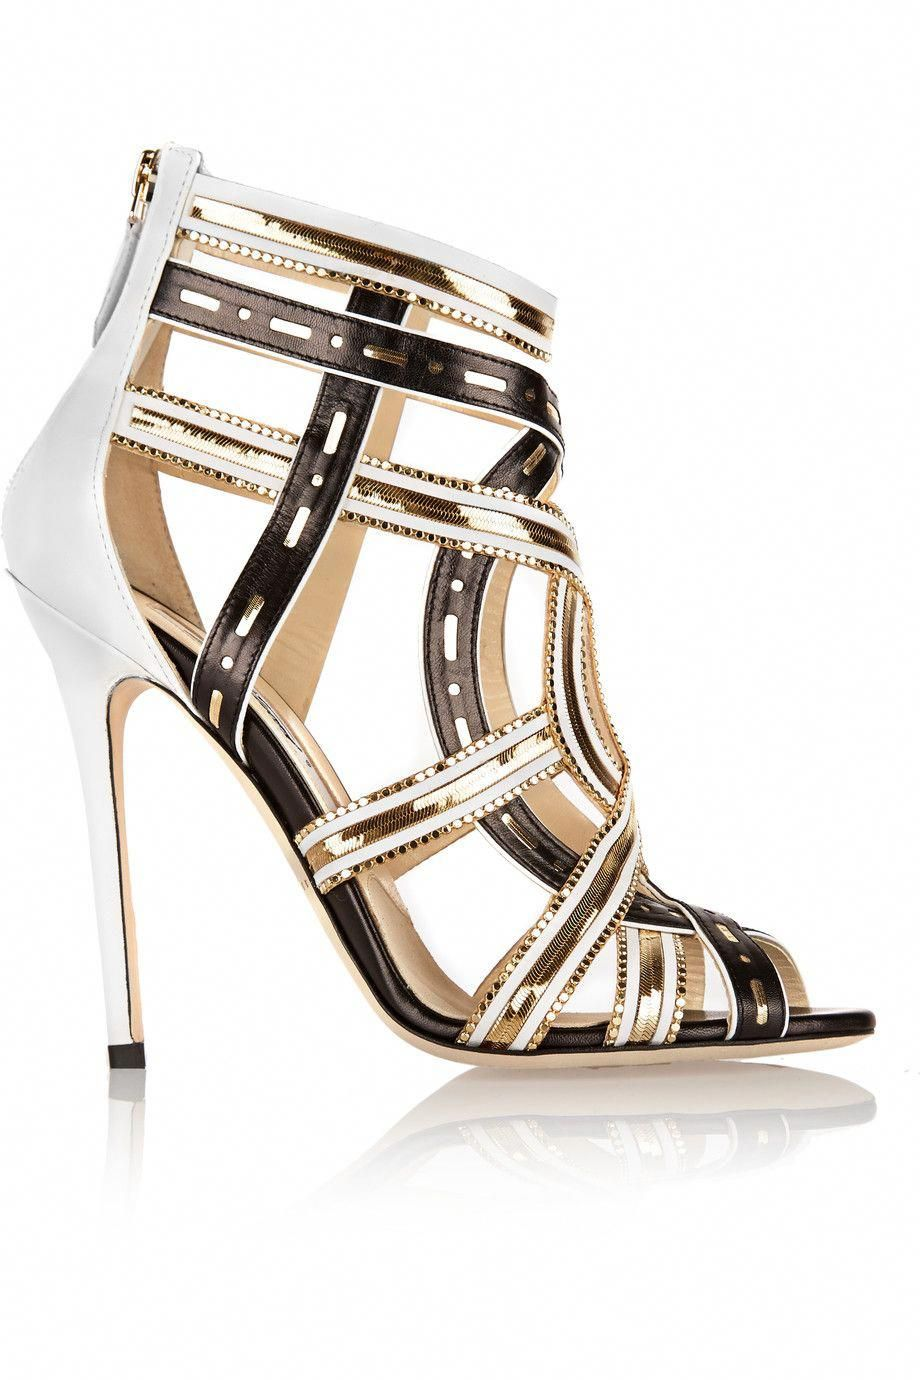 fe1481449d2 BRIAN ATWOOD Marva Chain-Embellished Leather Sandals.  brianatwood  shoes   sandals